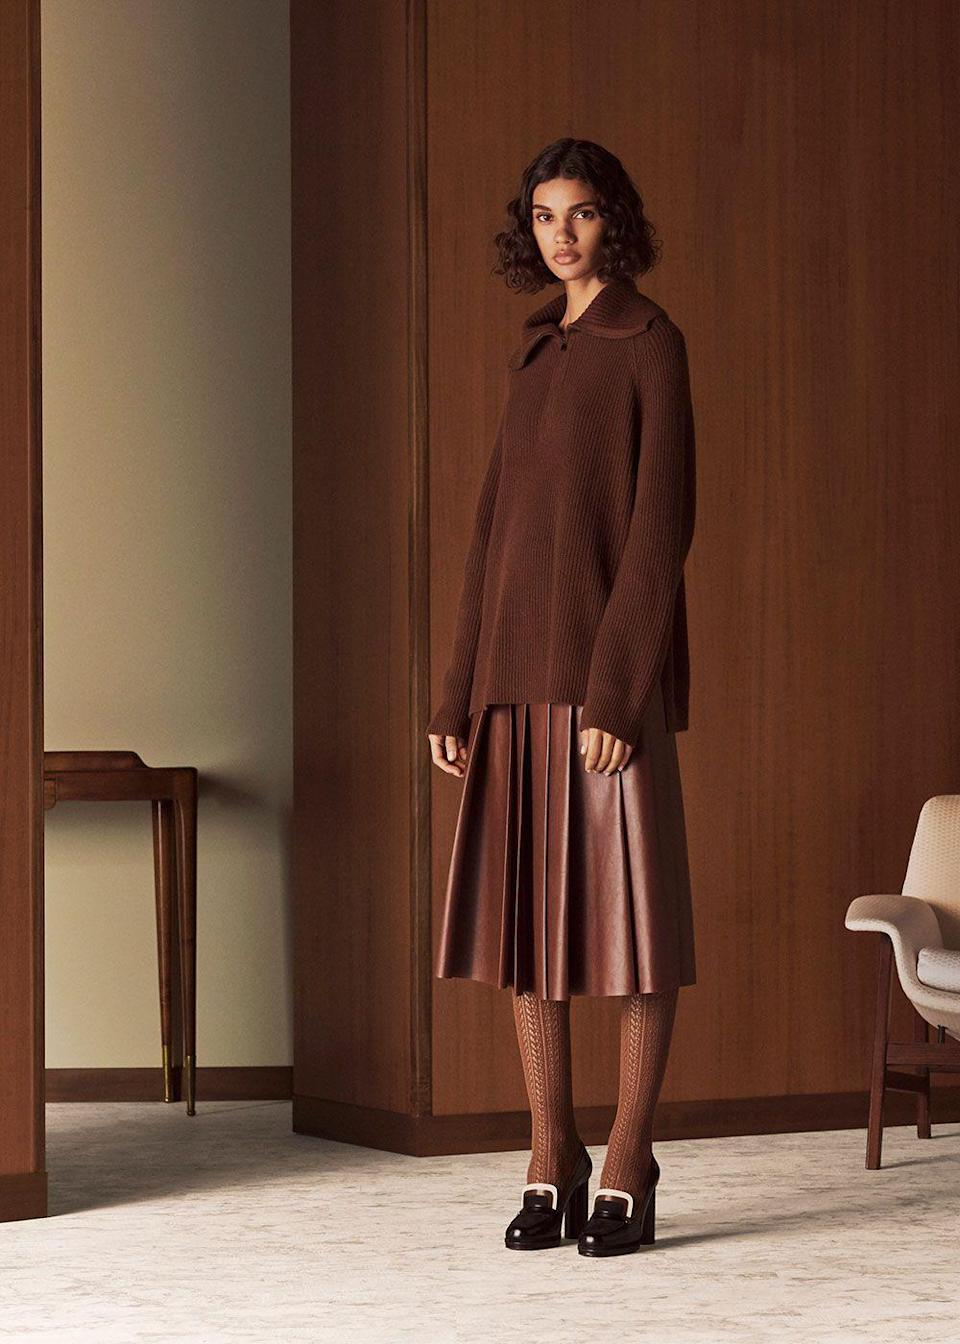 """<p>Luxurious ease is what so many of us are naturally gravitating toward now, and it's a banner thing for Loro Piano: Luxe simplicity is its signature stock-in-trade. The silhouette for fall is all about long, lean lines: wide-legged pants that drop to the floor and monochromatic sets that utilize color as the ultimate lengthener. The collection found its inspiration in Milan, its """"way of dressing and behaving,"""" and the effortless, utterly mixable pieces certainly speak volumes about the person wearing them without ever needing to do more than whisper. That said, the label achieves its aim of wanting the wearer to shine through—these are not clothes that overwhelm or steal the spotlight—yet there's no denying that the combination of palette, fabric, and silhouette all make for an undeniable message.<em>—Leah Melby Clinton</em></p>"""